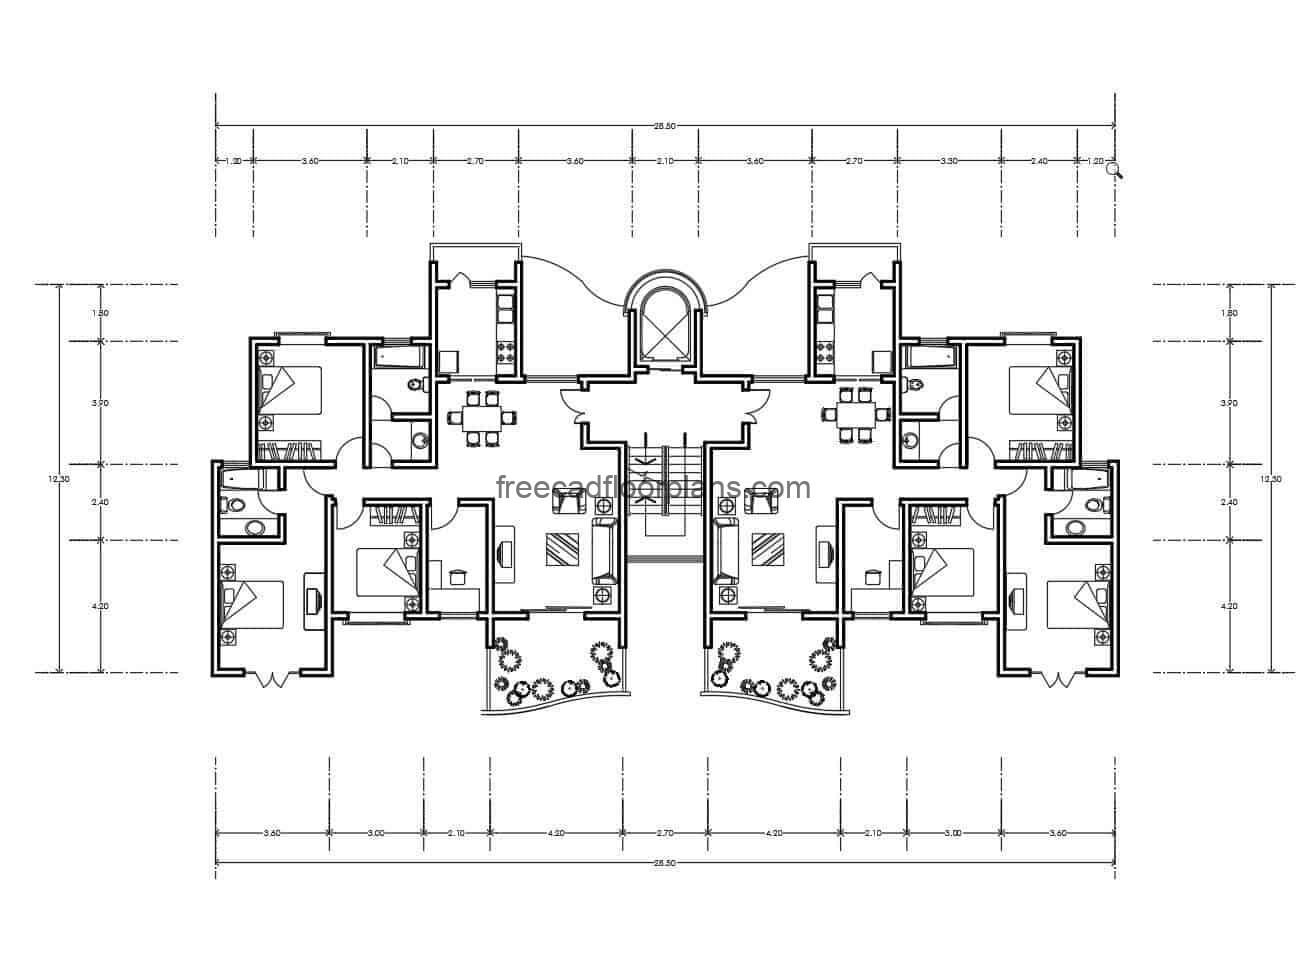 Architectural project and dimensioned plan of residential apartment with interesting volume mixing curved and rectangular shapes, file in DWG autocad format with blocks of interior spaces, living room, kitchen, rooms for free download